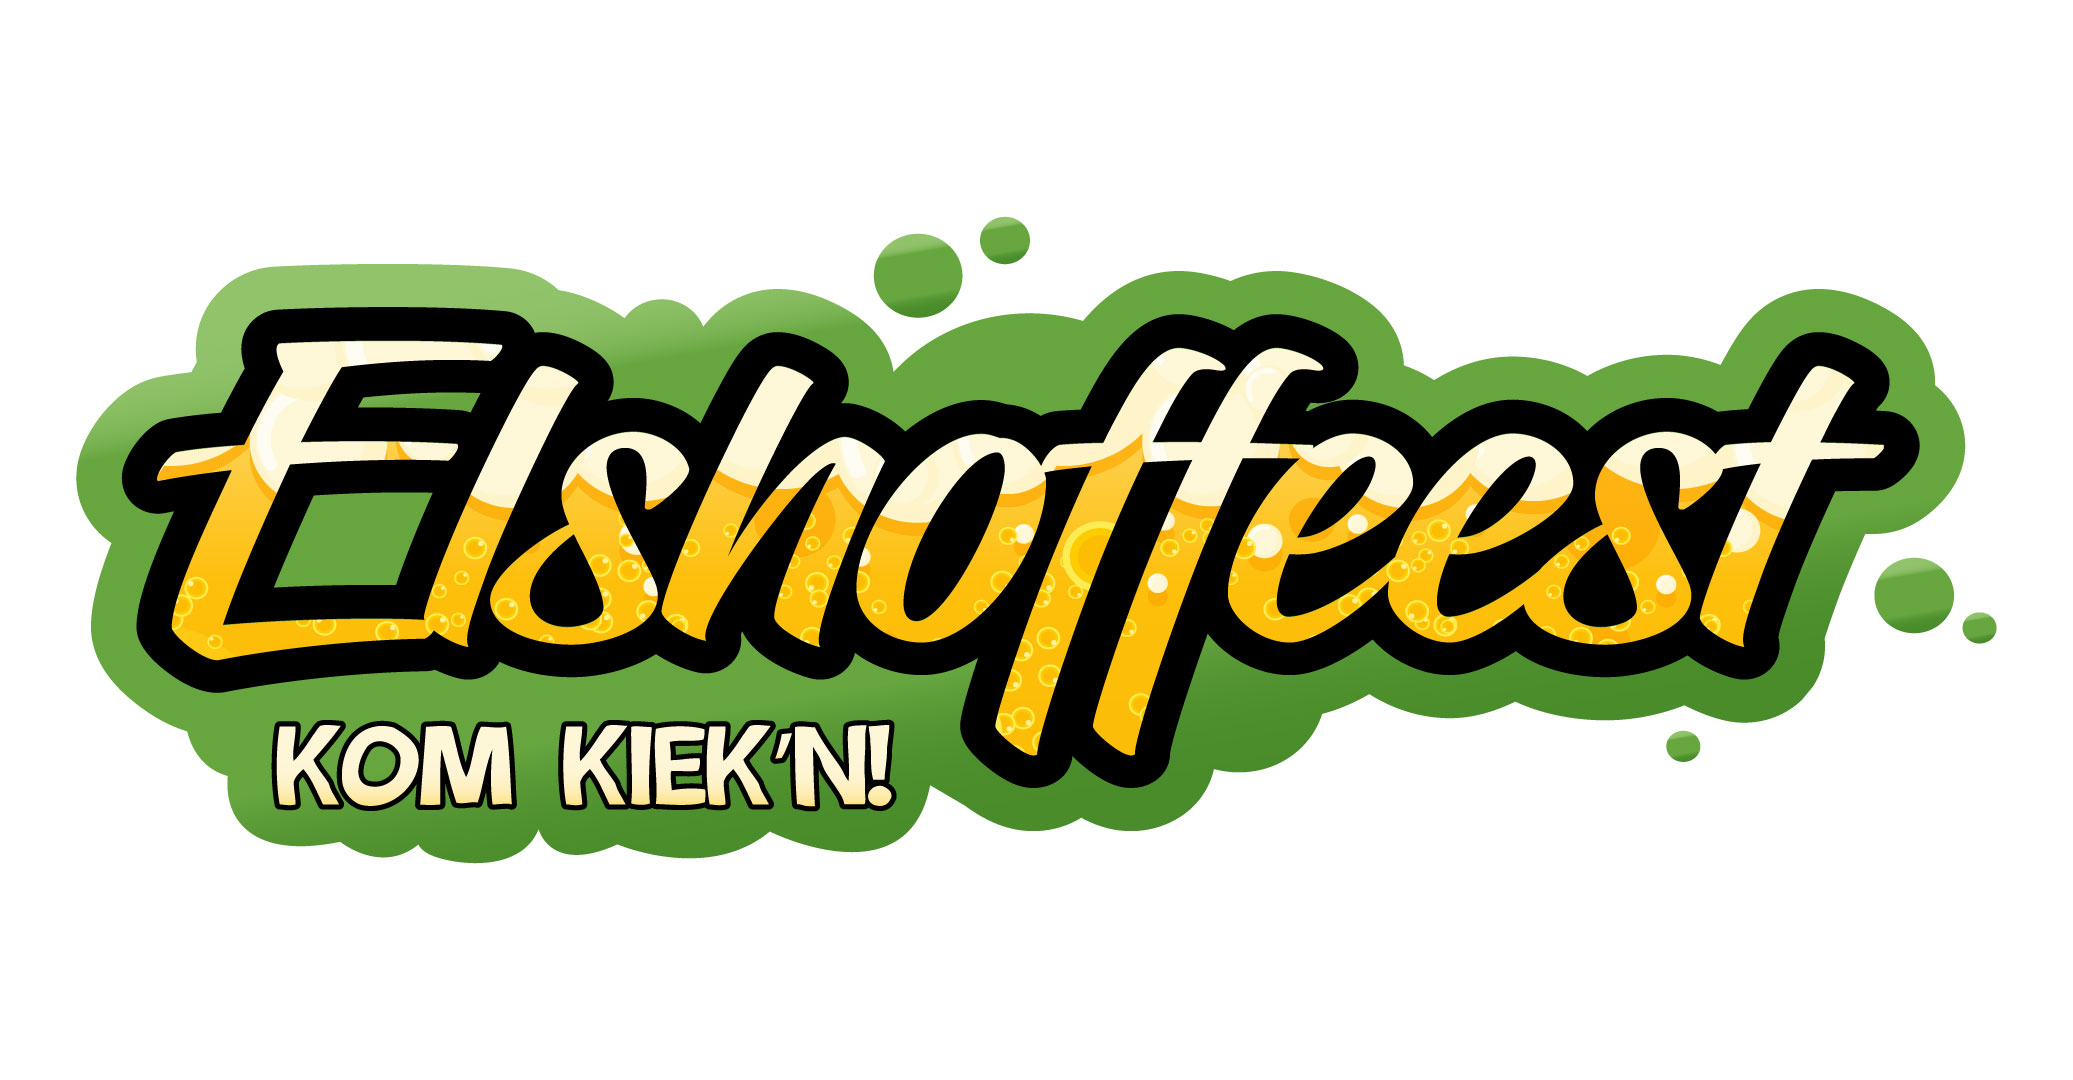 Elshoffeest Logo